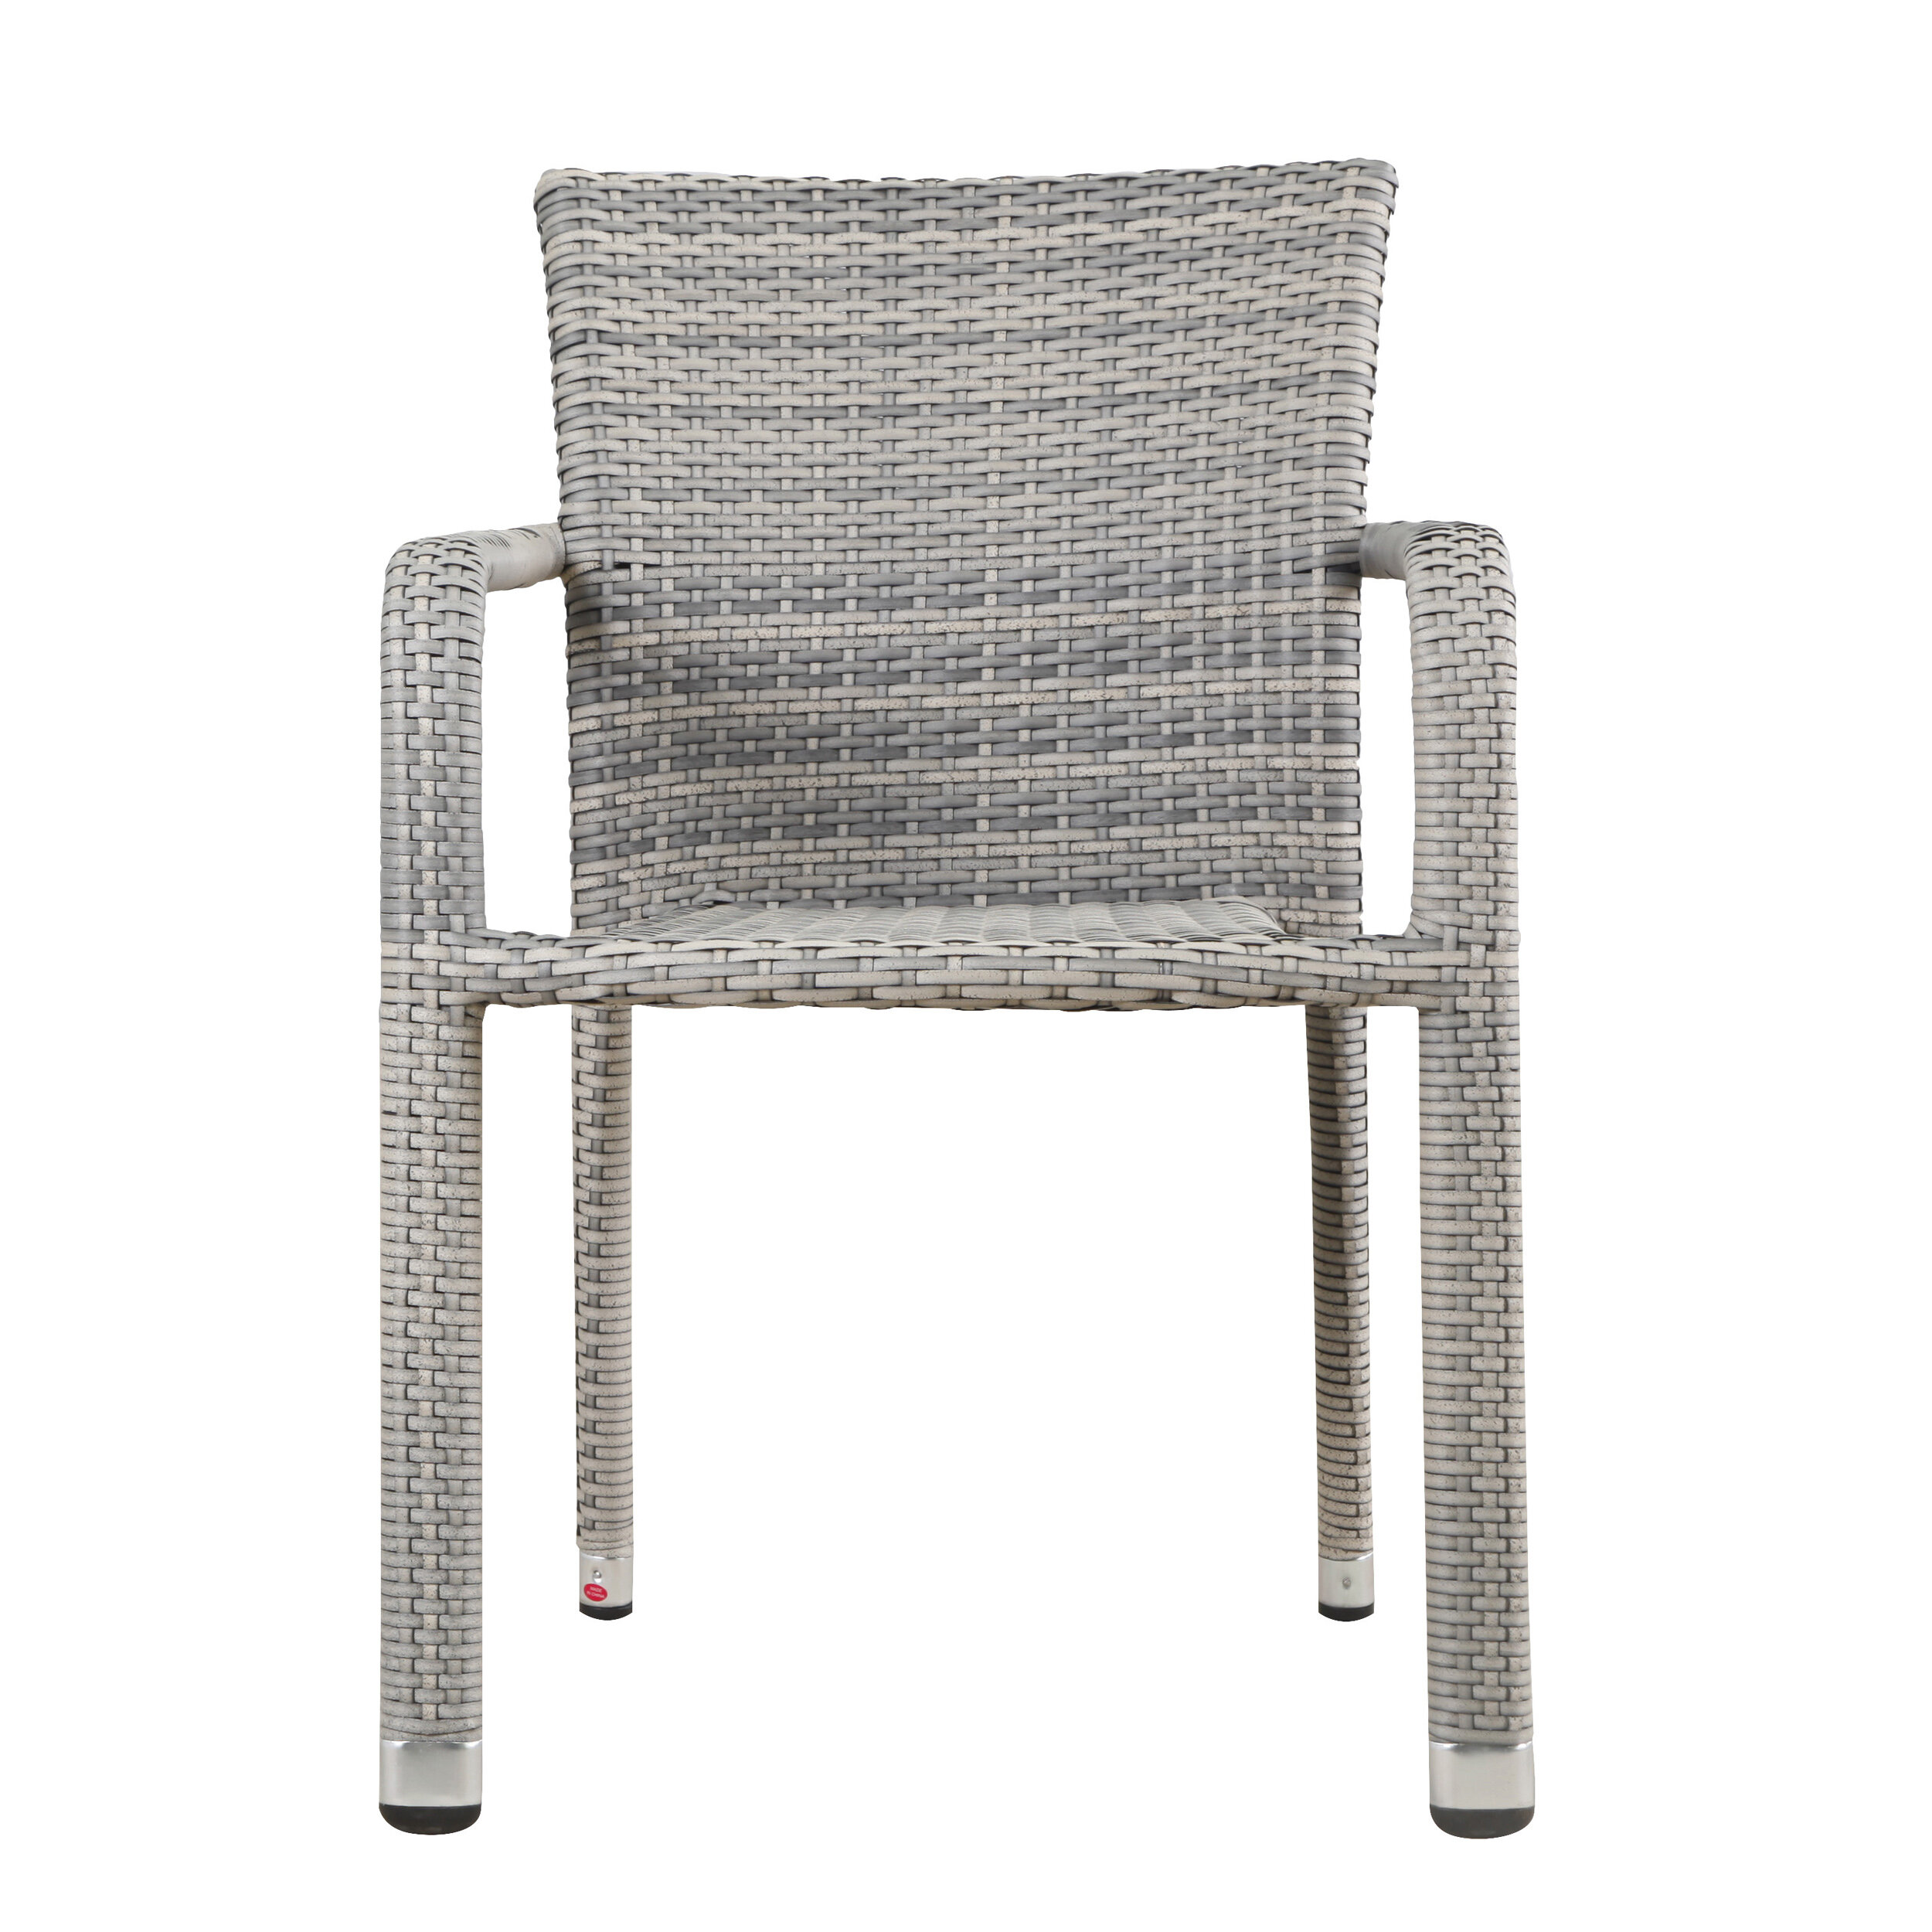 Sol 72 outdoor blakely stacking patio dining chair reviews wayfair